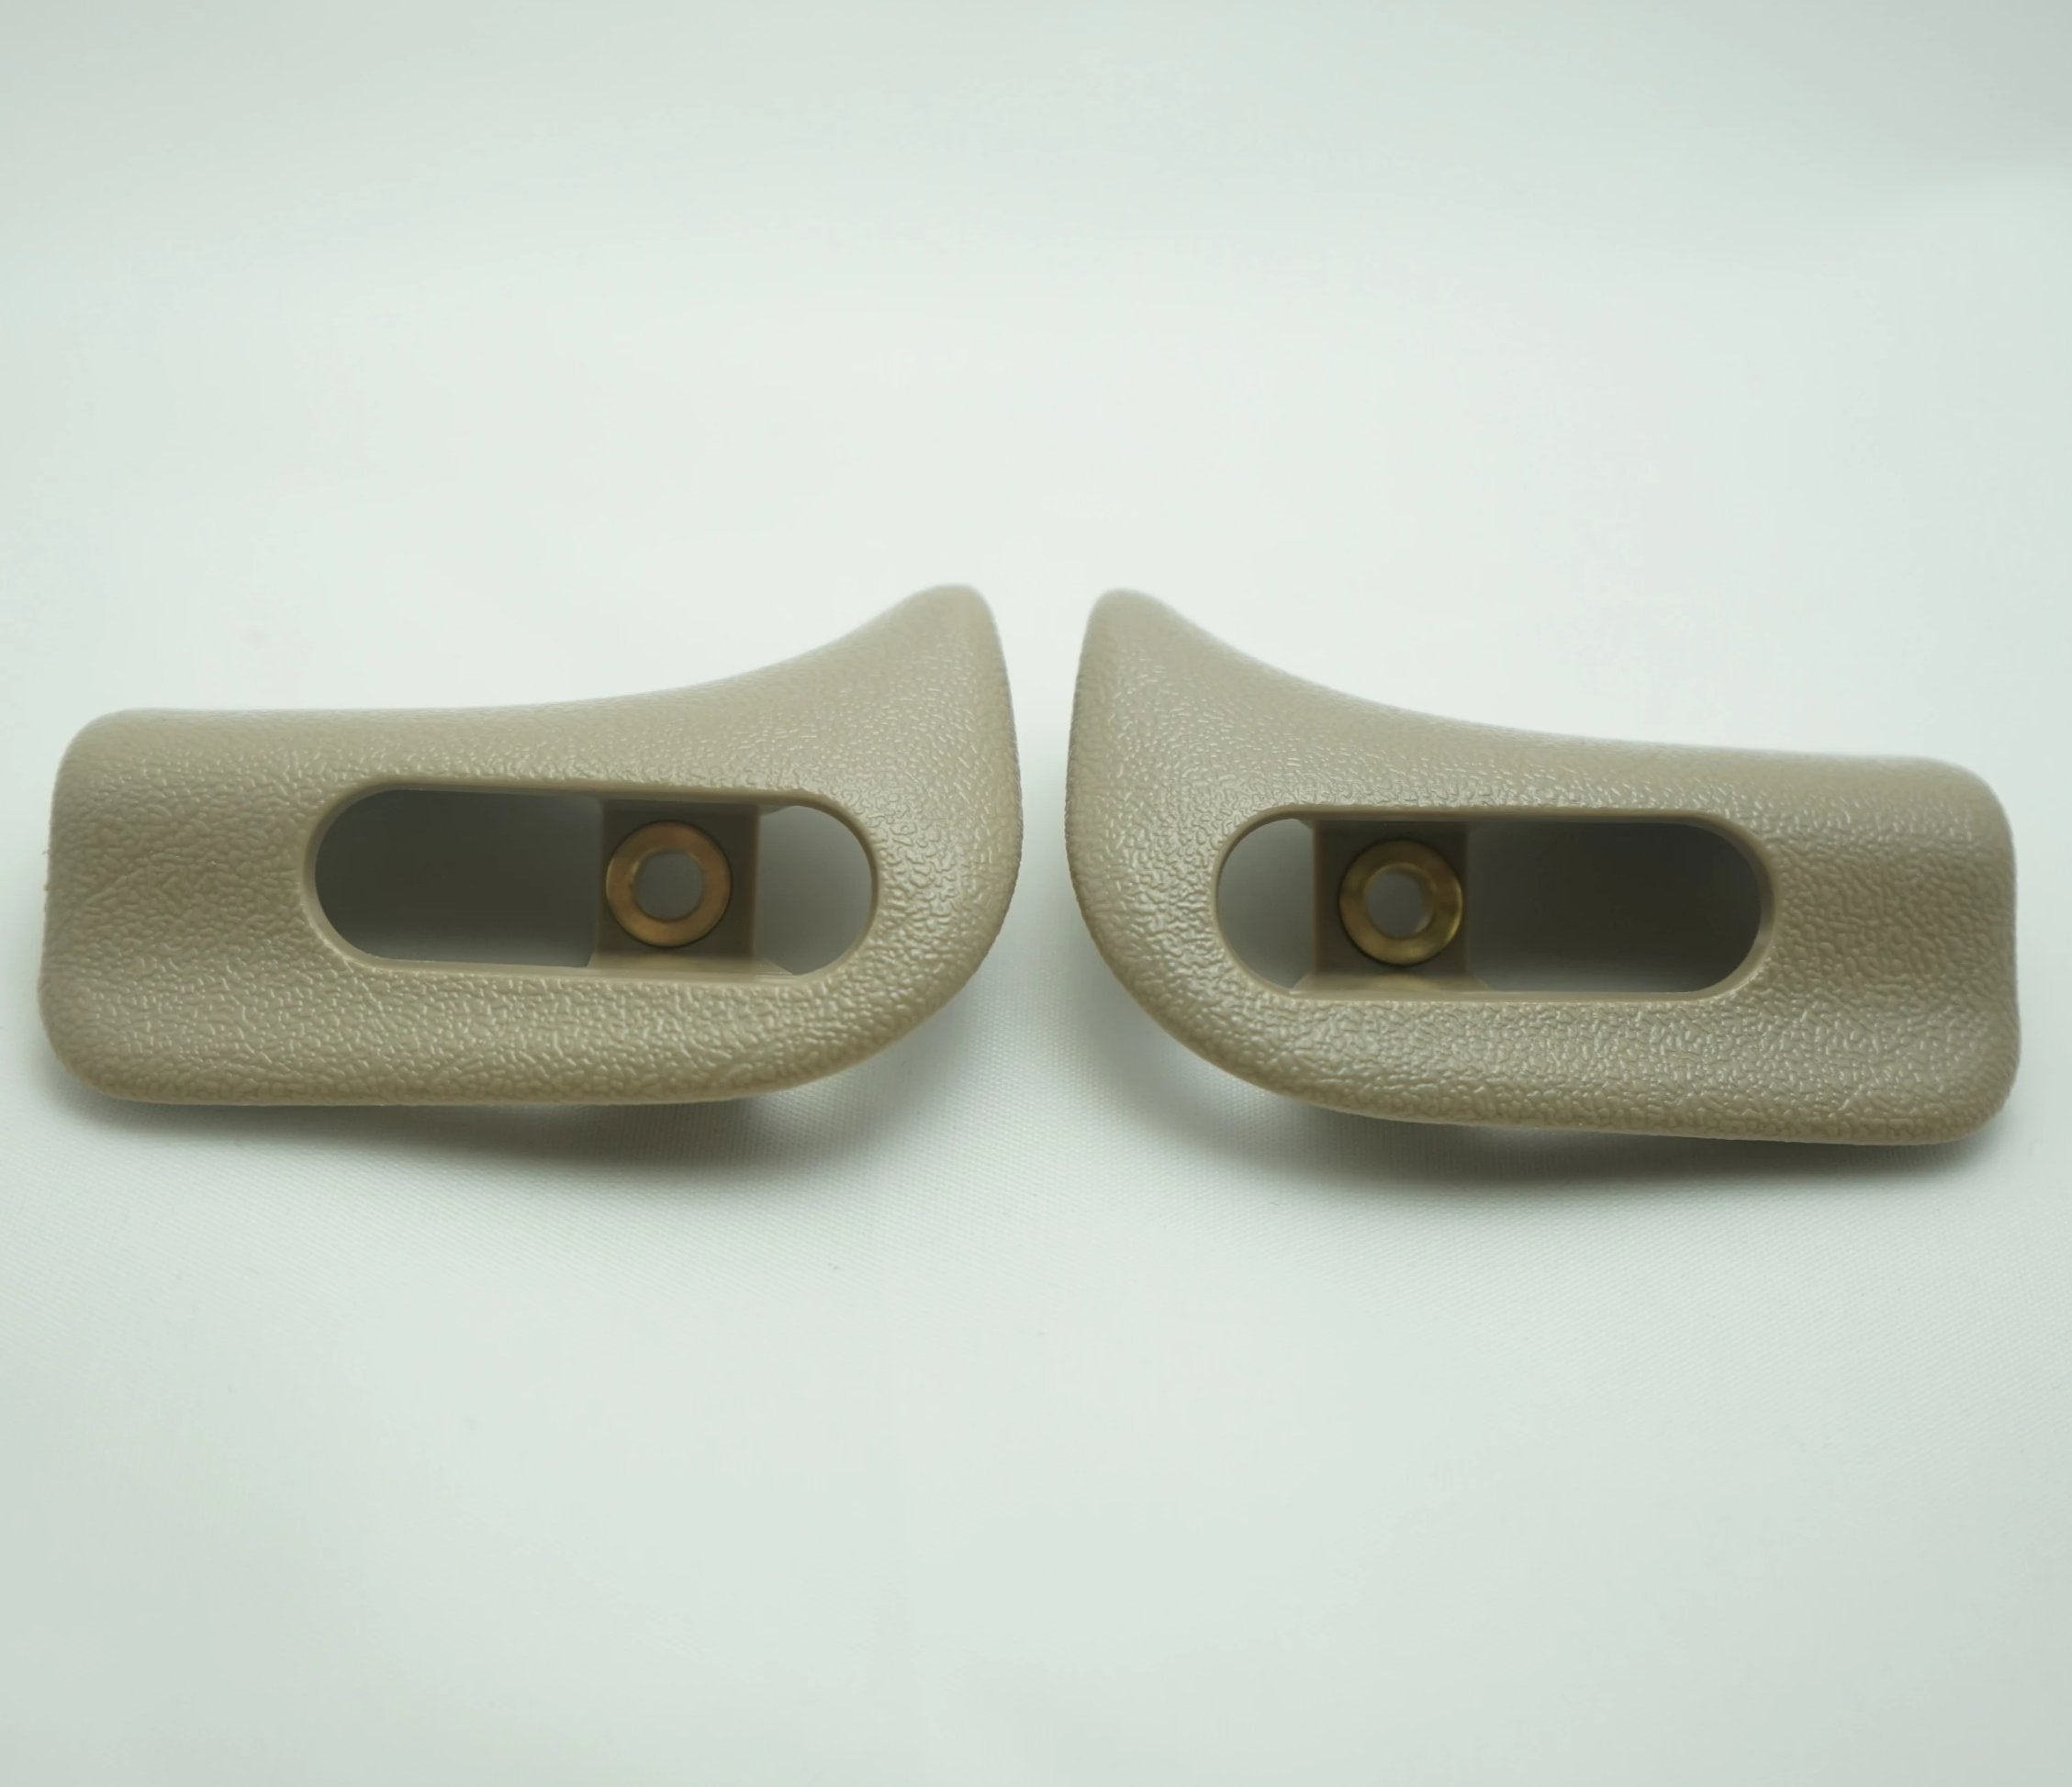 Pair of Sun Visor Trim Caps - Beige / Mushroom - Classic Trim Parts